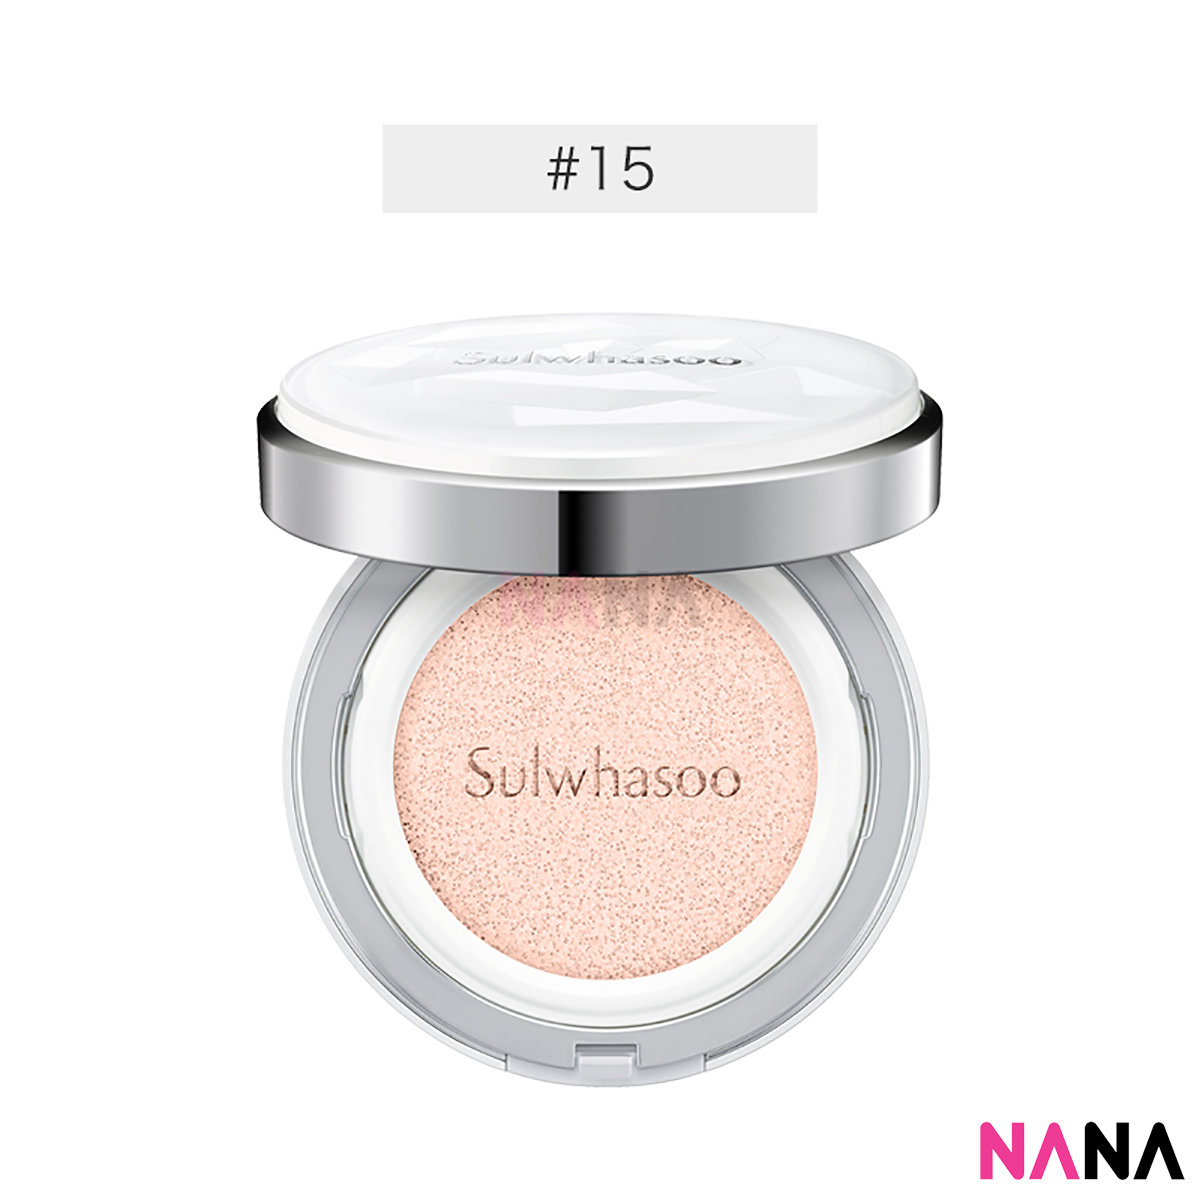 Snowise Brightening Cushion SPF50+/PA+++ #15 Ivory Pink (14g + Refill)